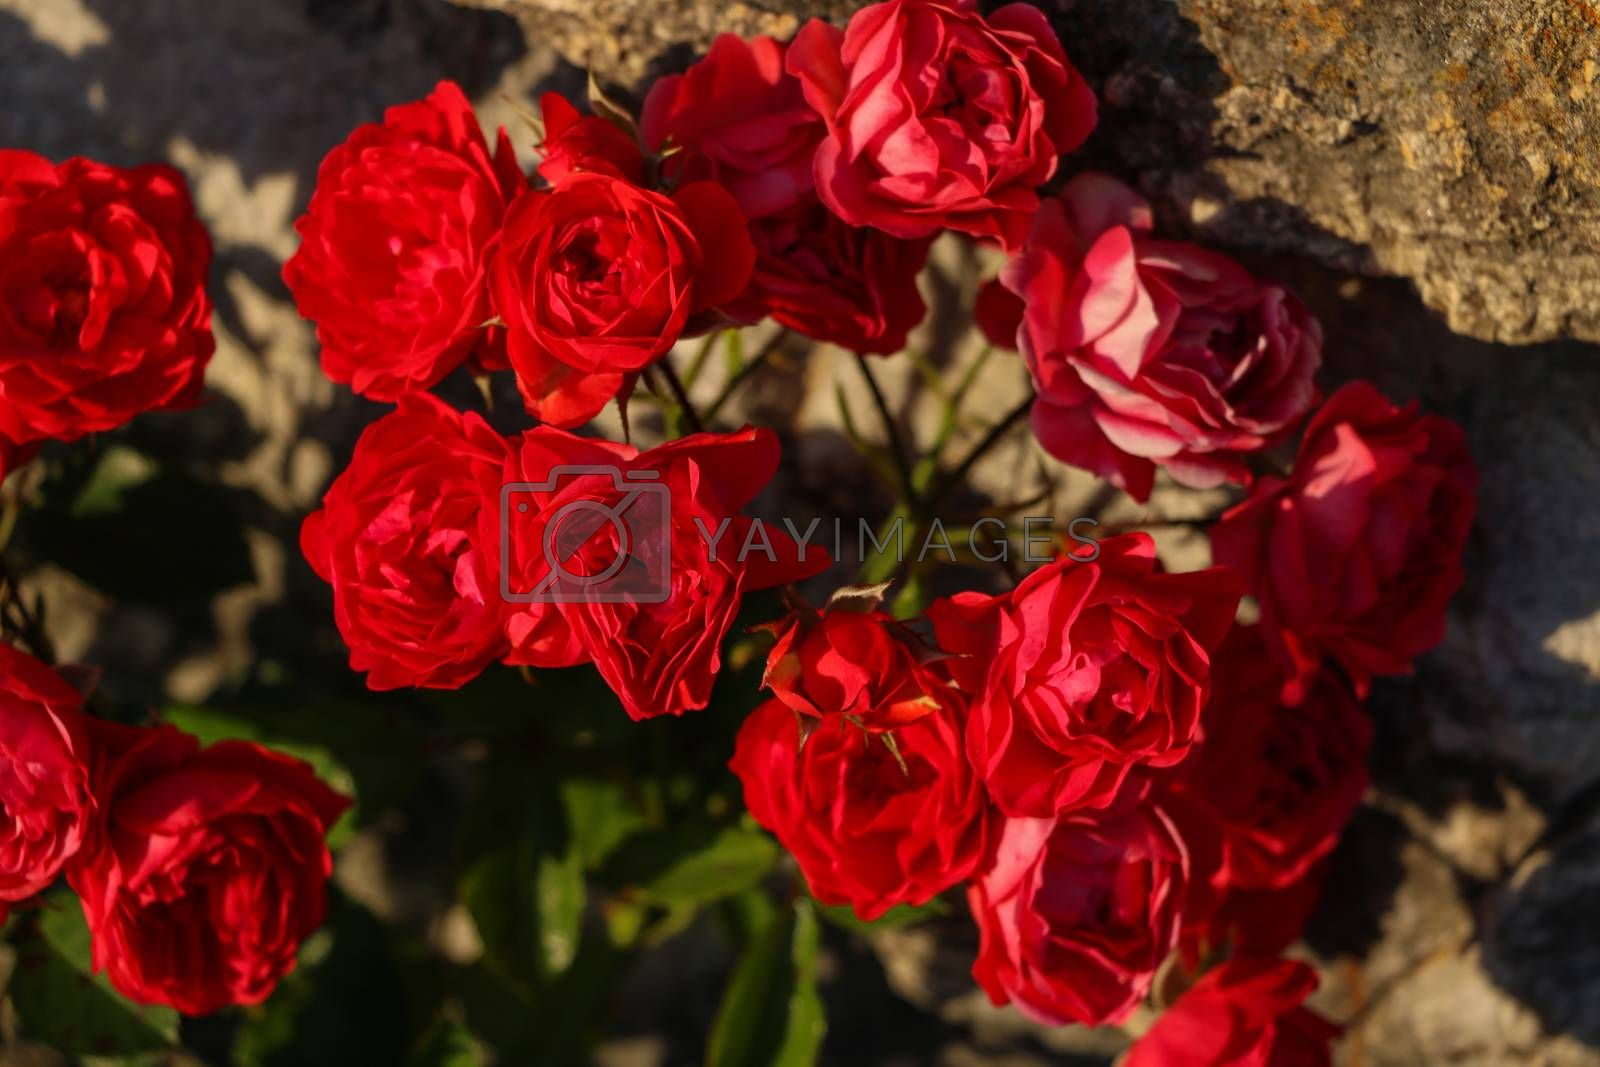 Royalty free image of Close up of red bright roses in the garden. by kip02kas